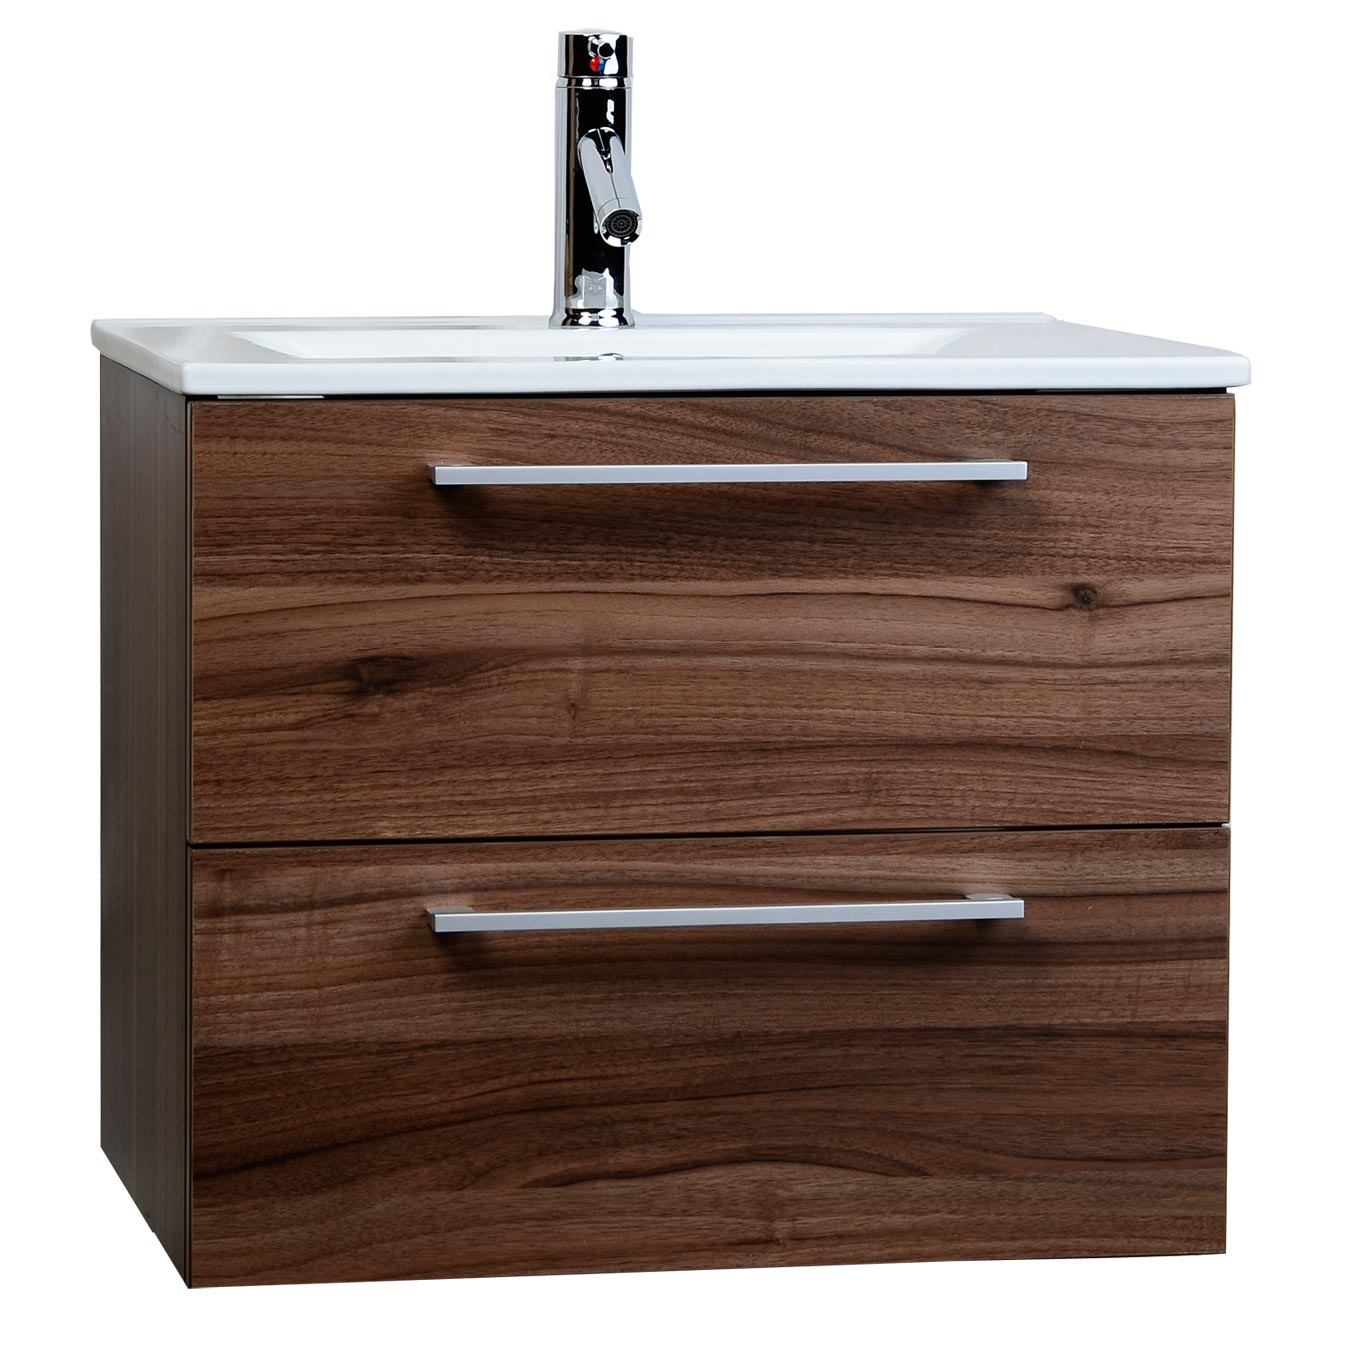 European styled caen 23 5 single bathroom vanity set in for Restroom vanity